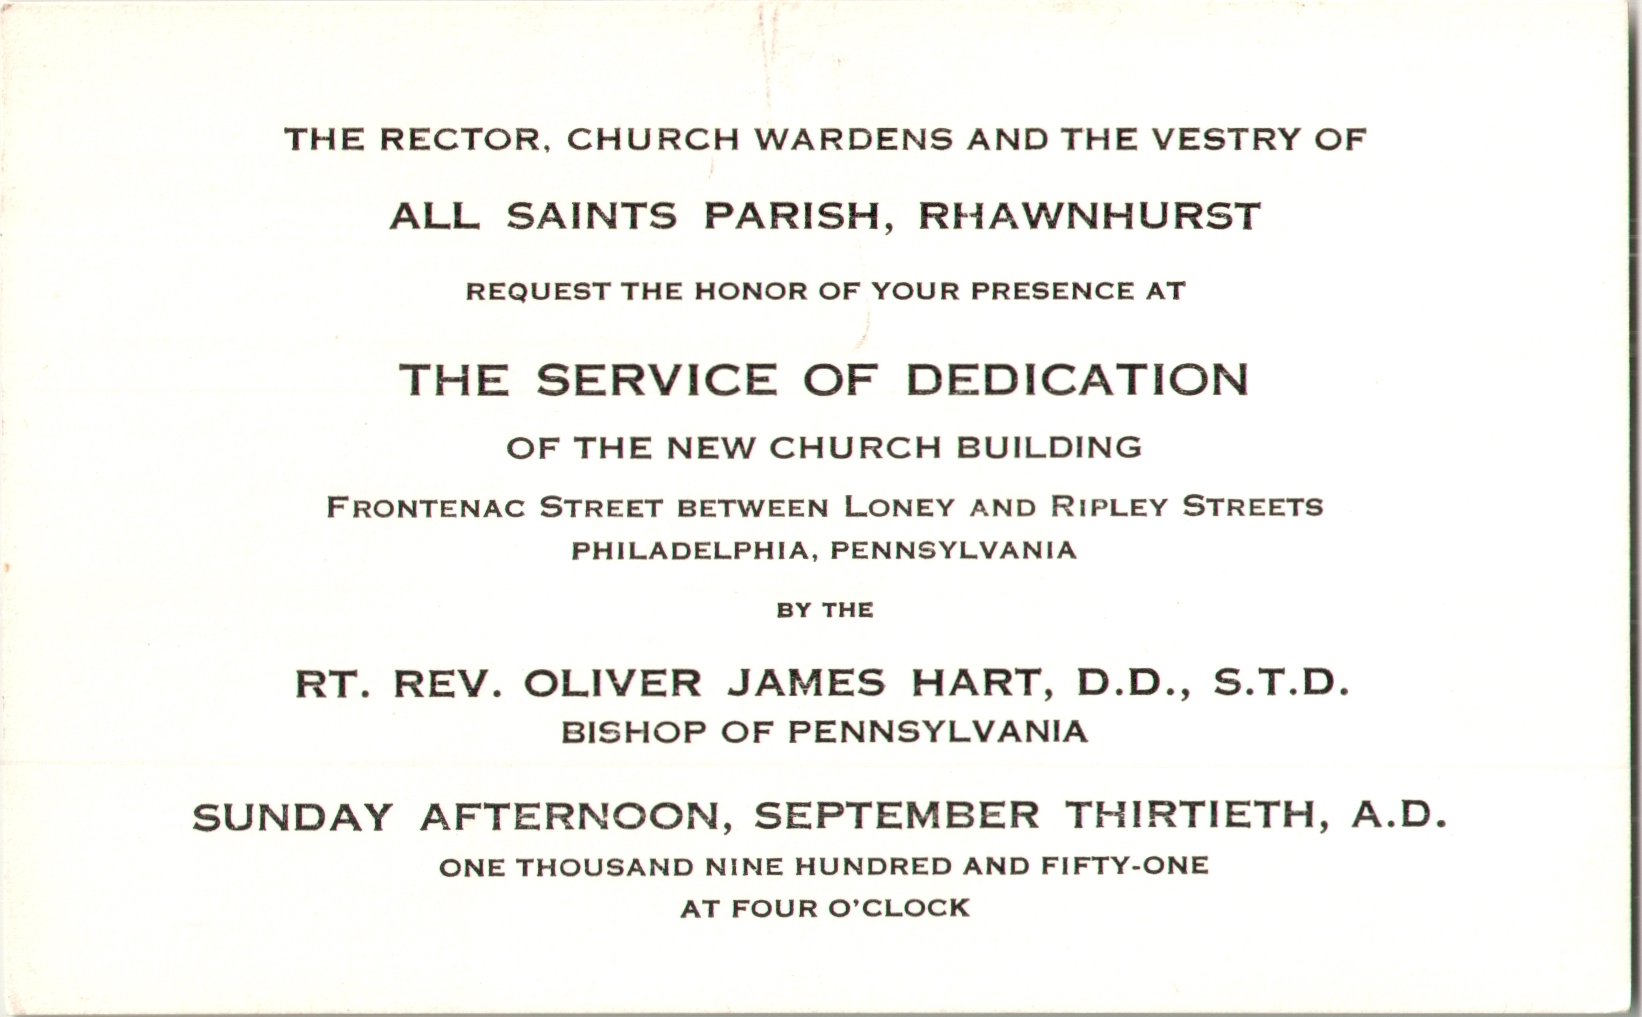 Invitation to the Service of Dedication of the New Church Building